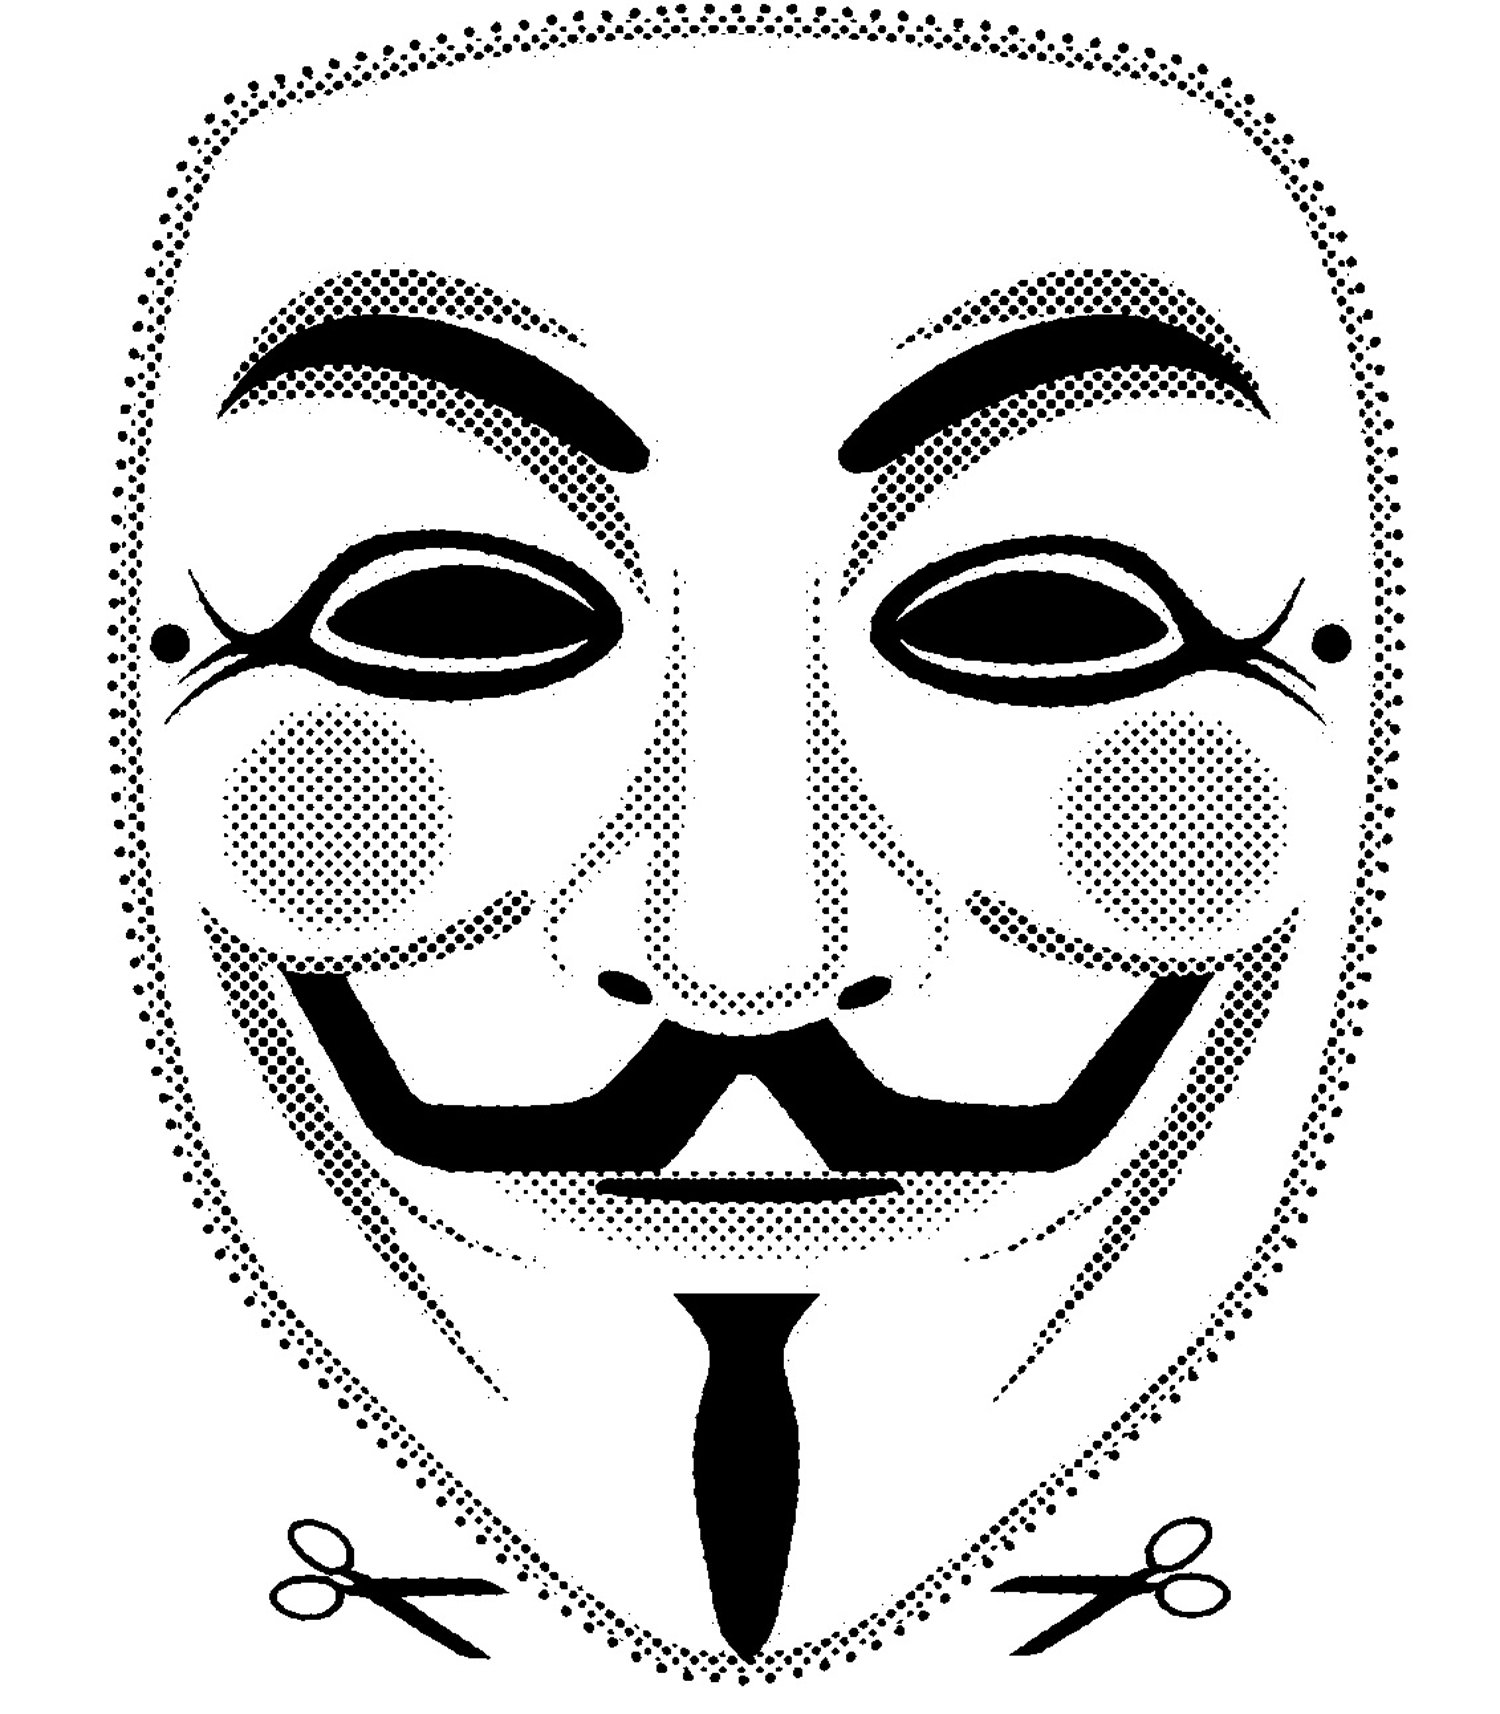 v for vendetta coloring pages - photo #21